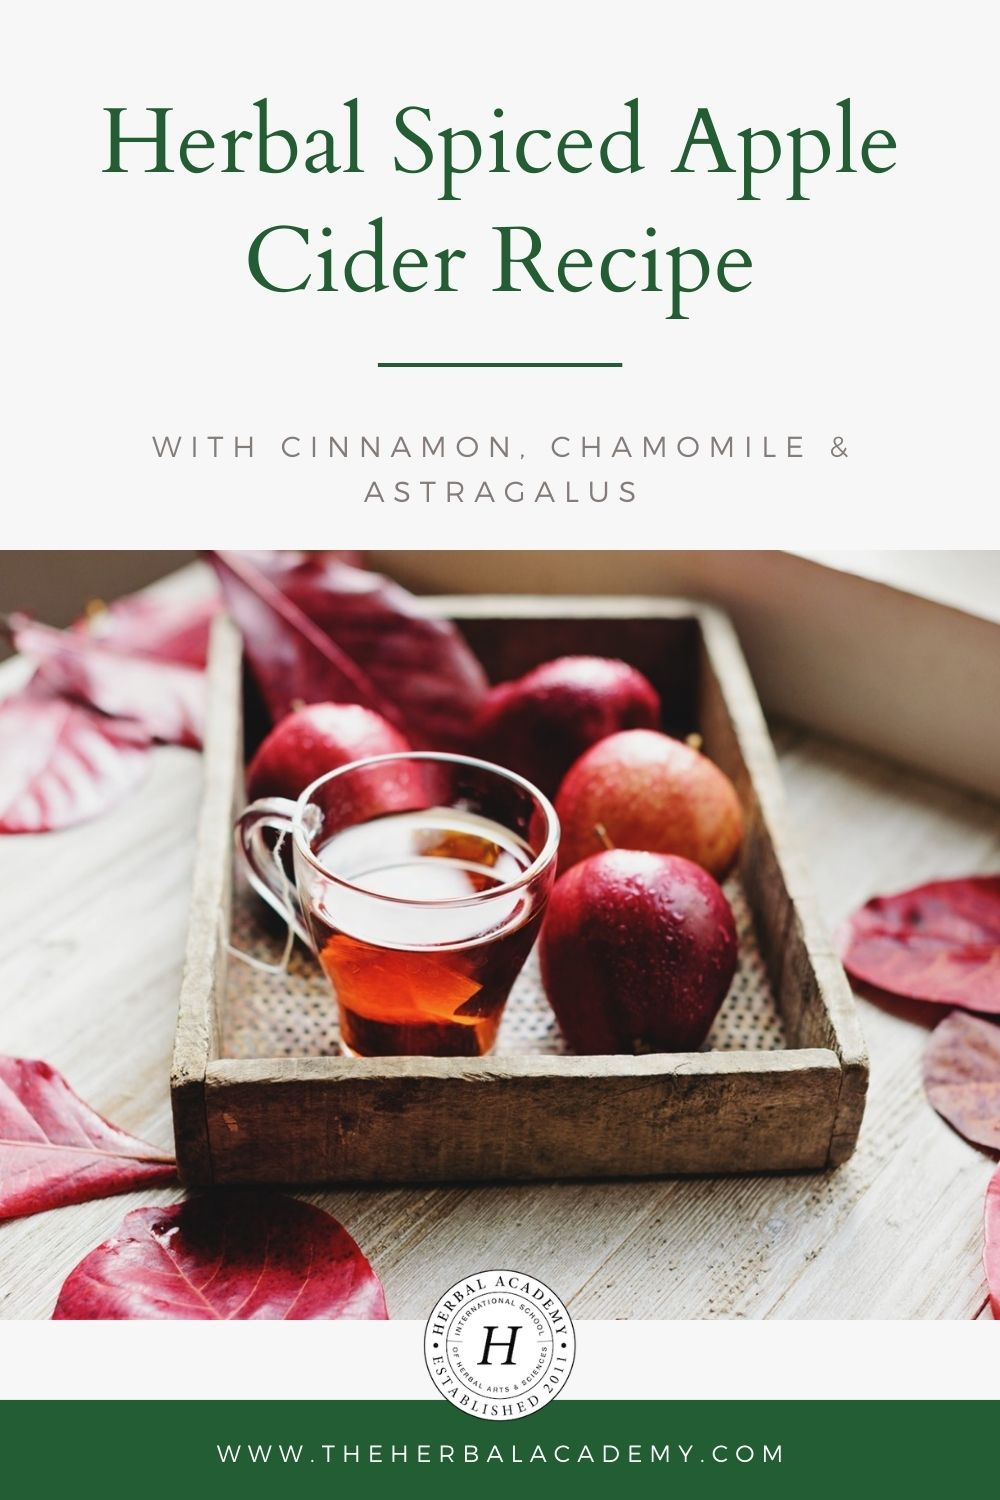 Herbal Spiced Apple Cider Recipe